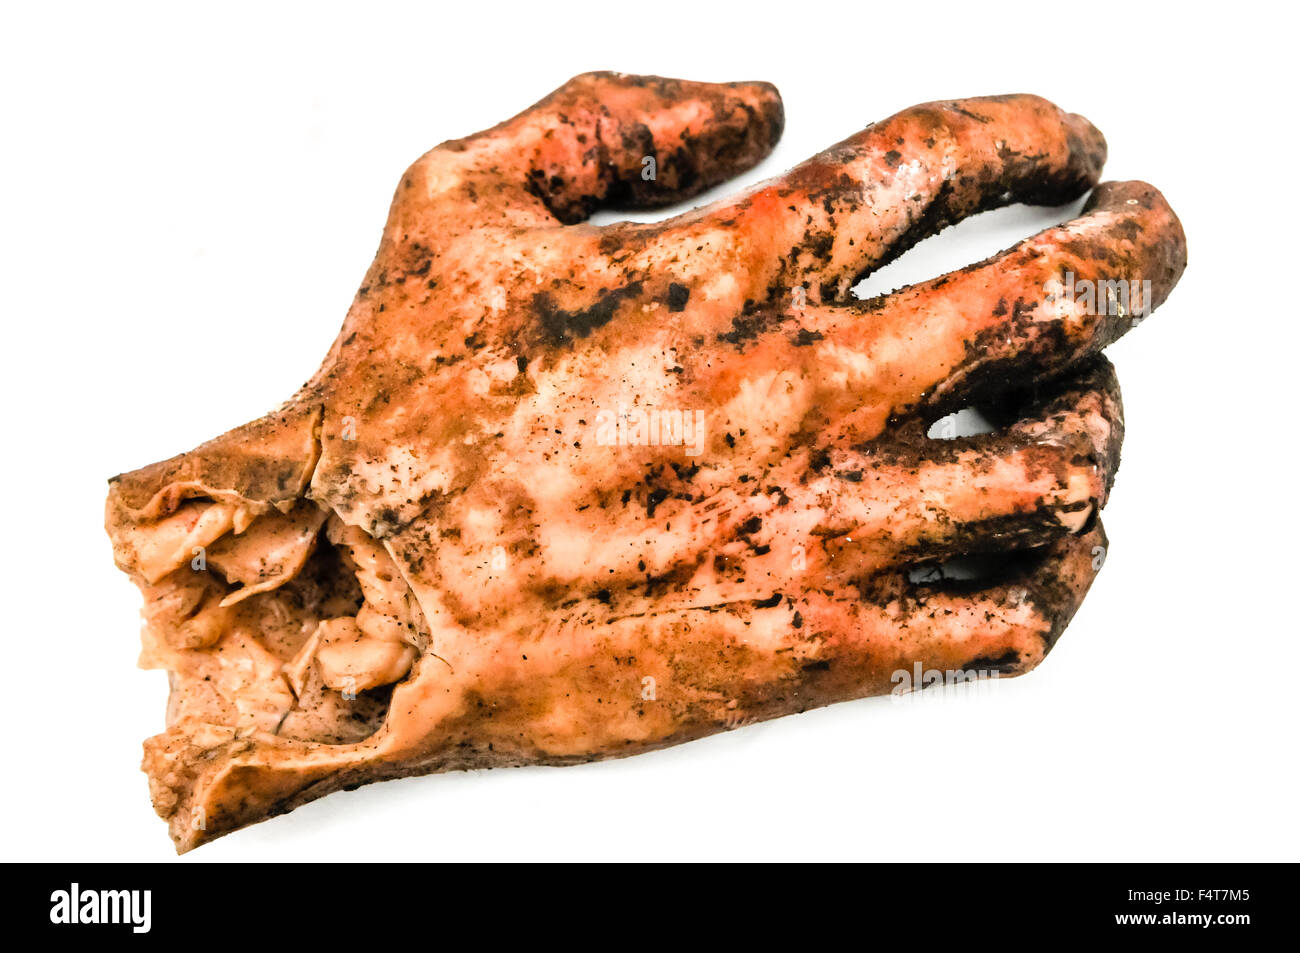 Model of a human hand, after being blown off by a bomb, as used for military training for disaster situations - Stock Image